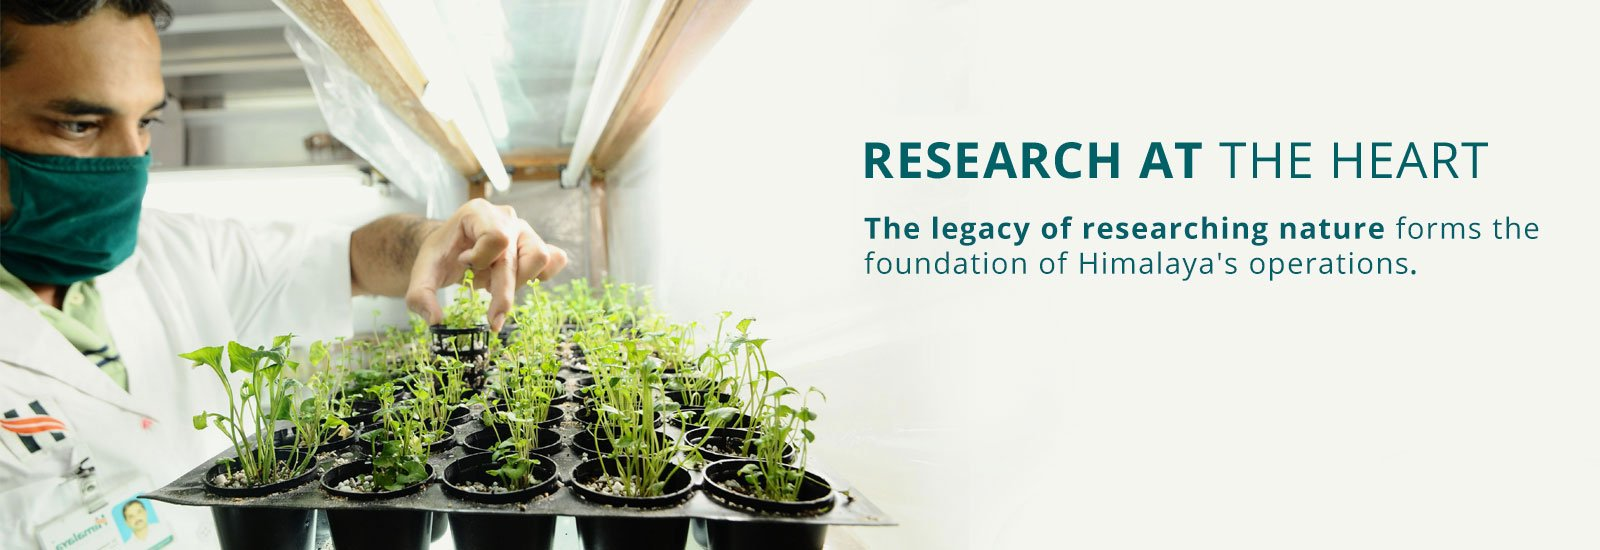 Research at the Heart